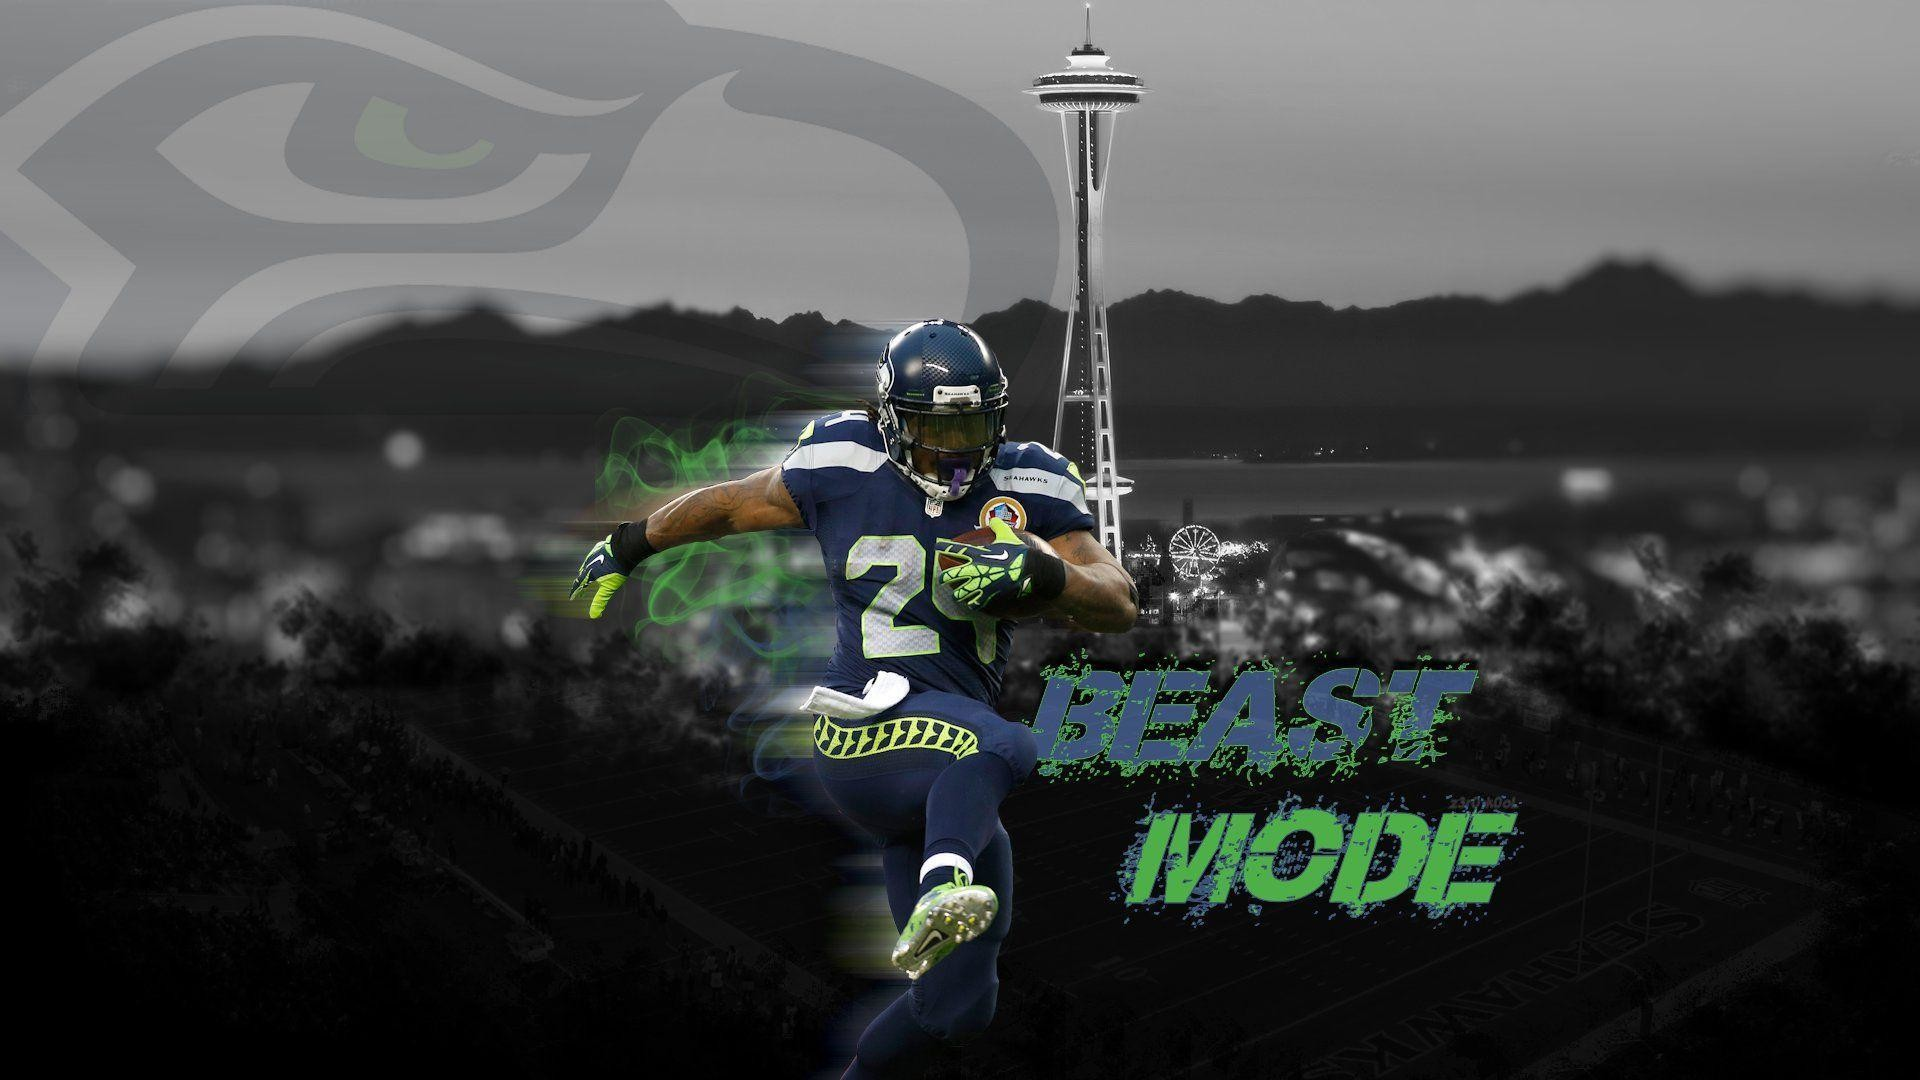 1920x1080 Top Seattle Seahawks Photos and Pictures, Seattle Seahawks 4K .